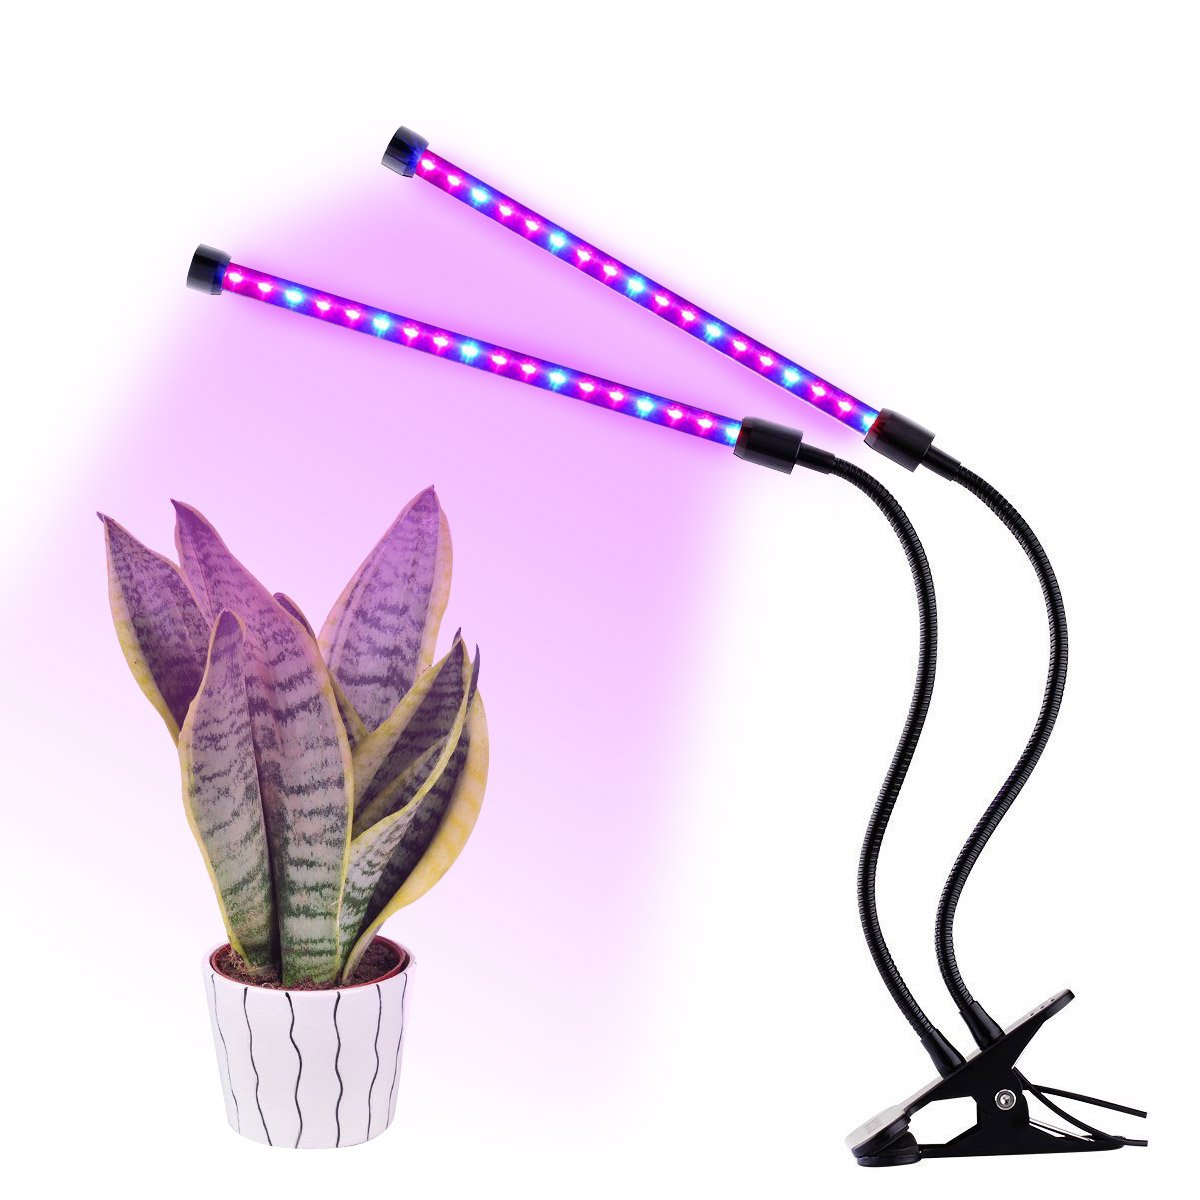 LED Plant Grow Light, Acetek 18W 36LEDs Double Heads Grow Lamp with Desk Clip for Green House Hydroponic Indoor Plants Veg Flower, Flexible Goose neck, 2 Level Dimmable [Energy Class A+++]